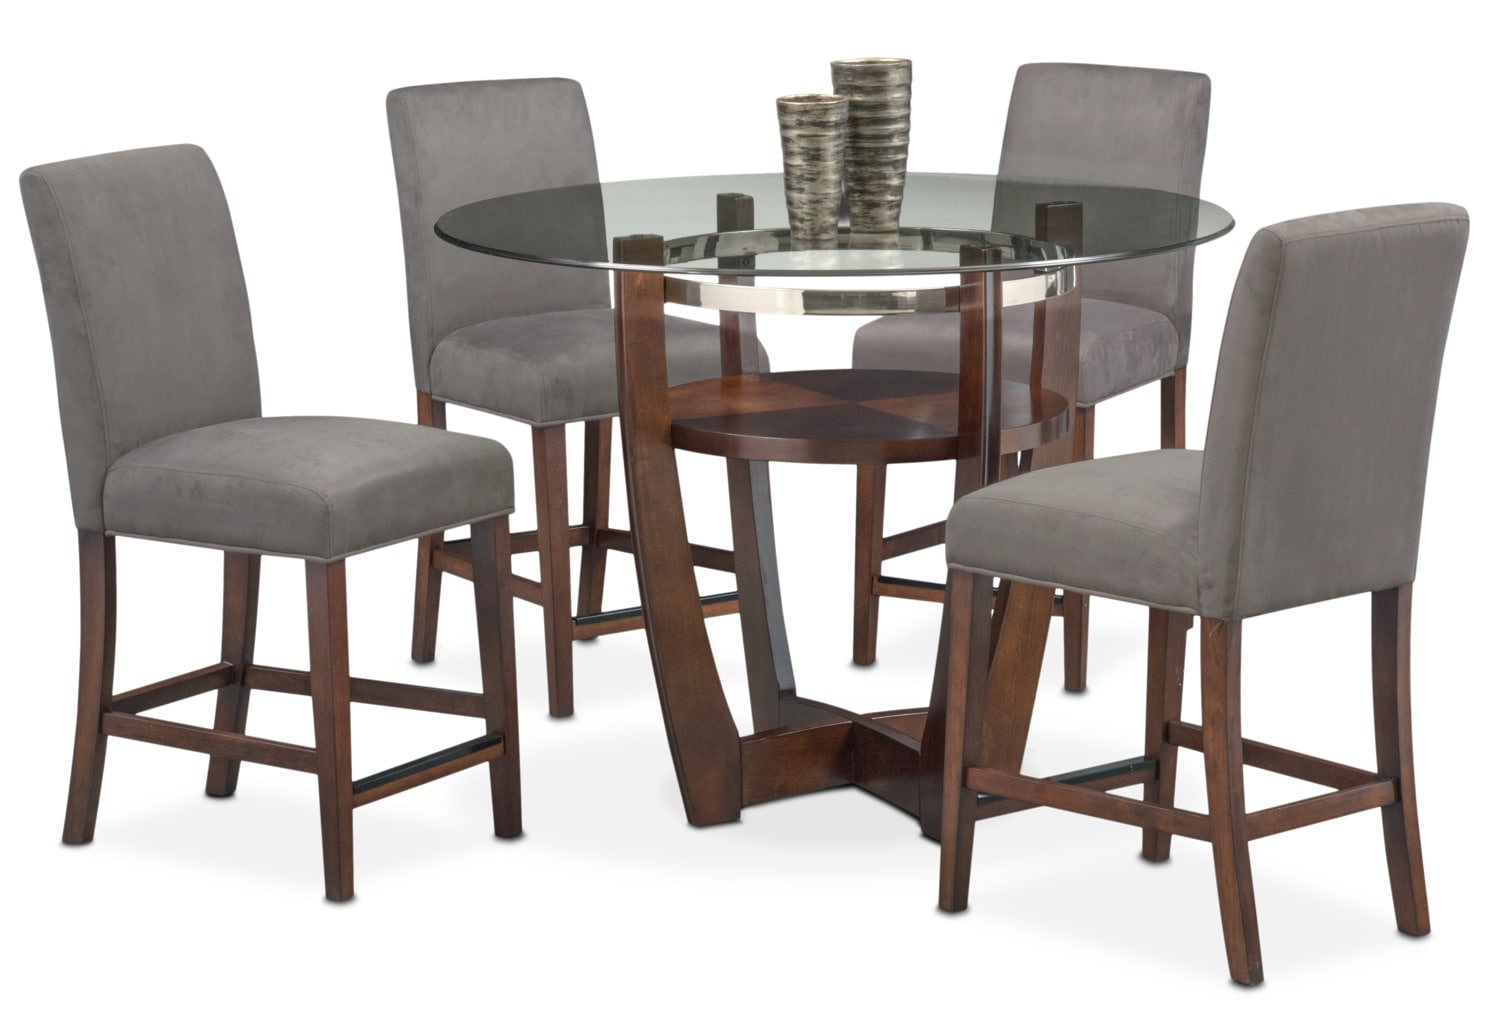 Alcove Counter-Height Table and 4 Side Chairs - Gray and Merlot